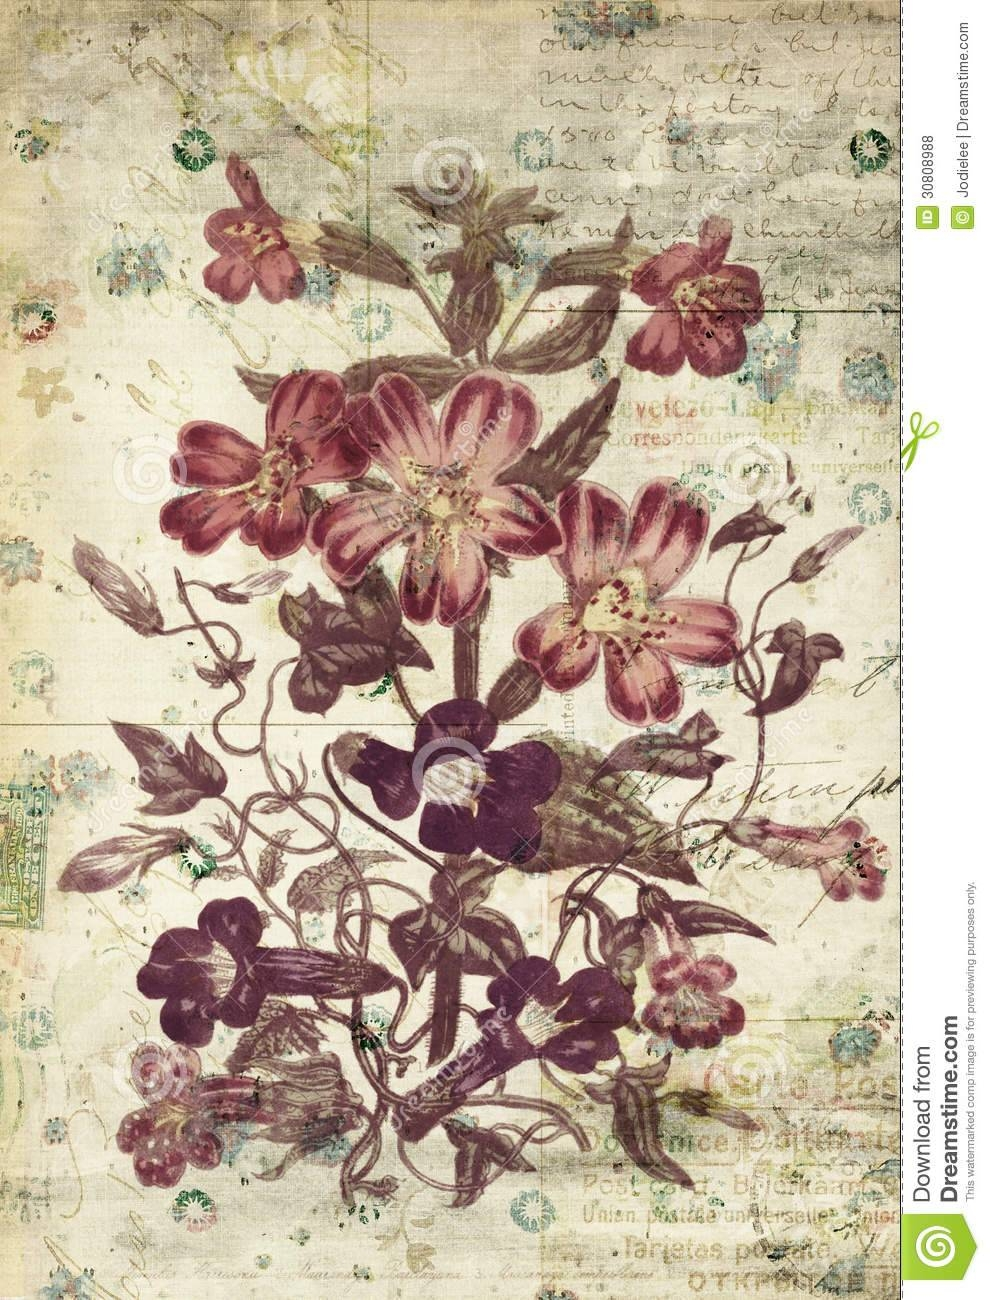 Flowers Botanical Vintage Style Wall Art With Textured Background Inside 2017 Vintage Style Wall Art (View 4 of 20)